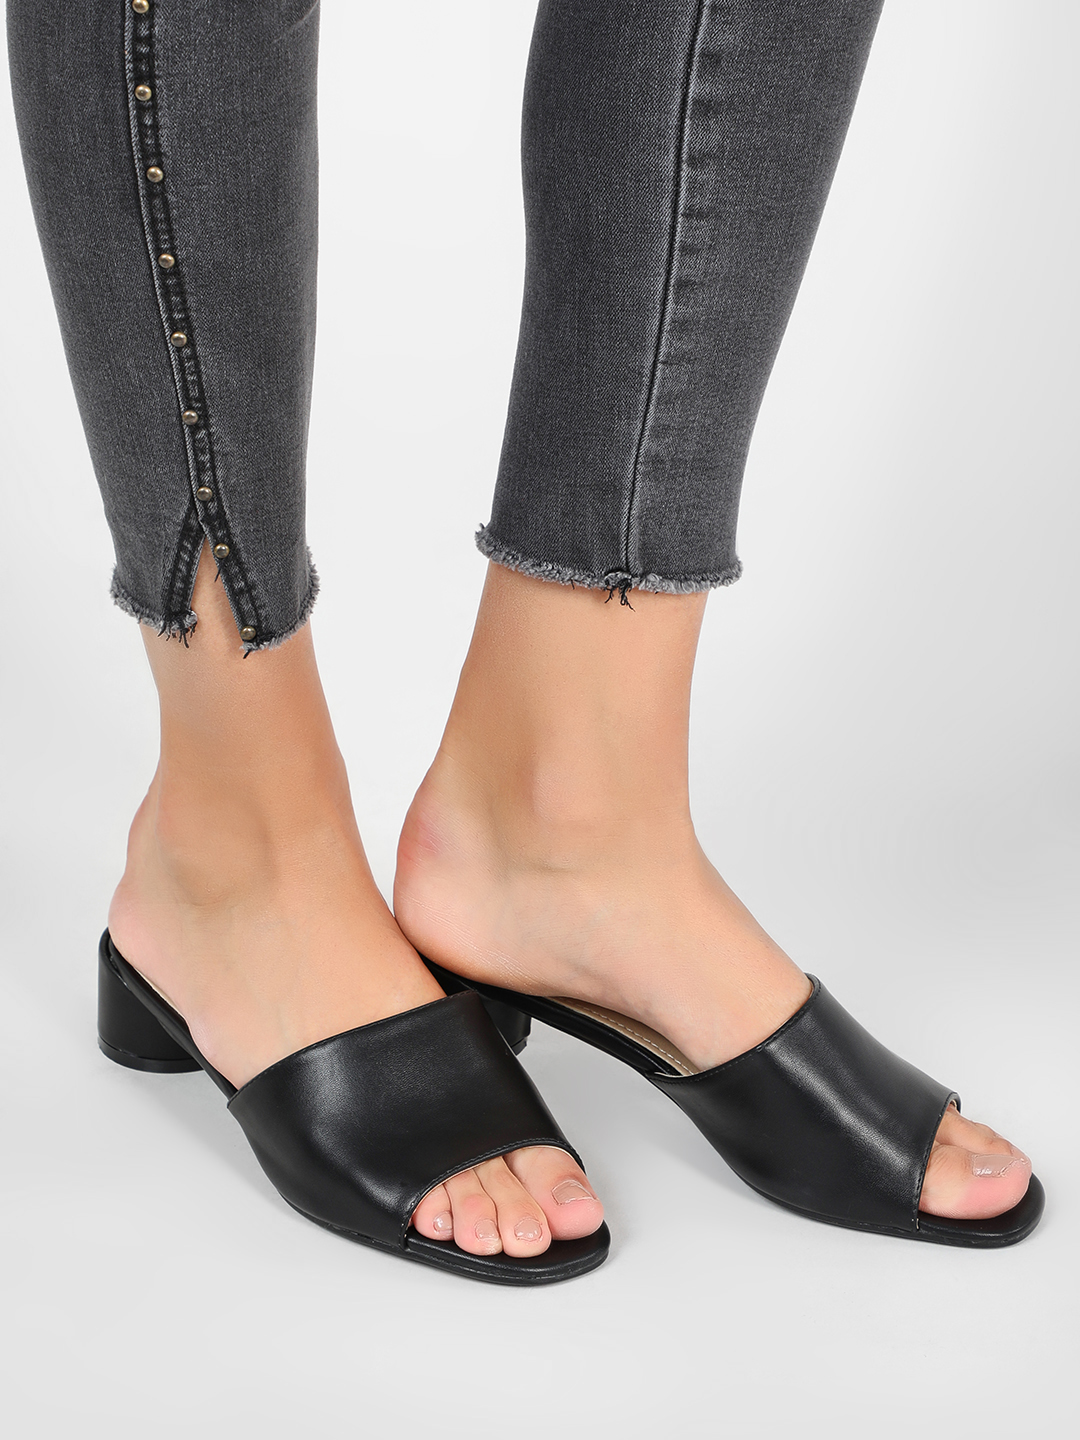 Intoto Black Mules With Short Cylindrical Heels 1